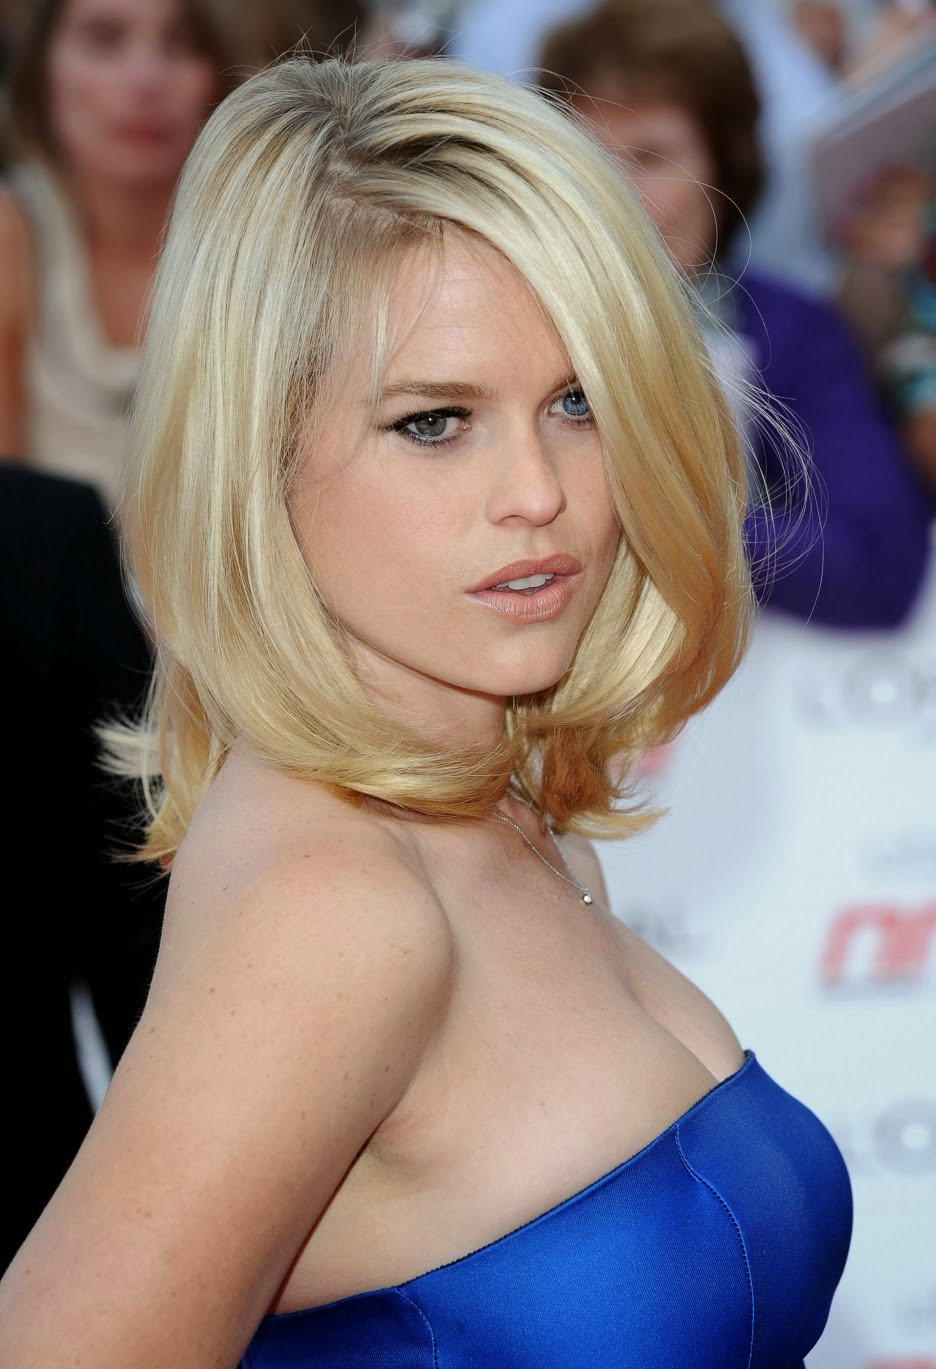 Latest Celebrity Photos Alice Eve Sexy And Hot Wallpapers-2778